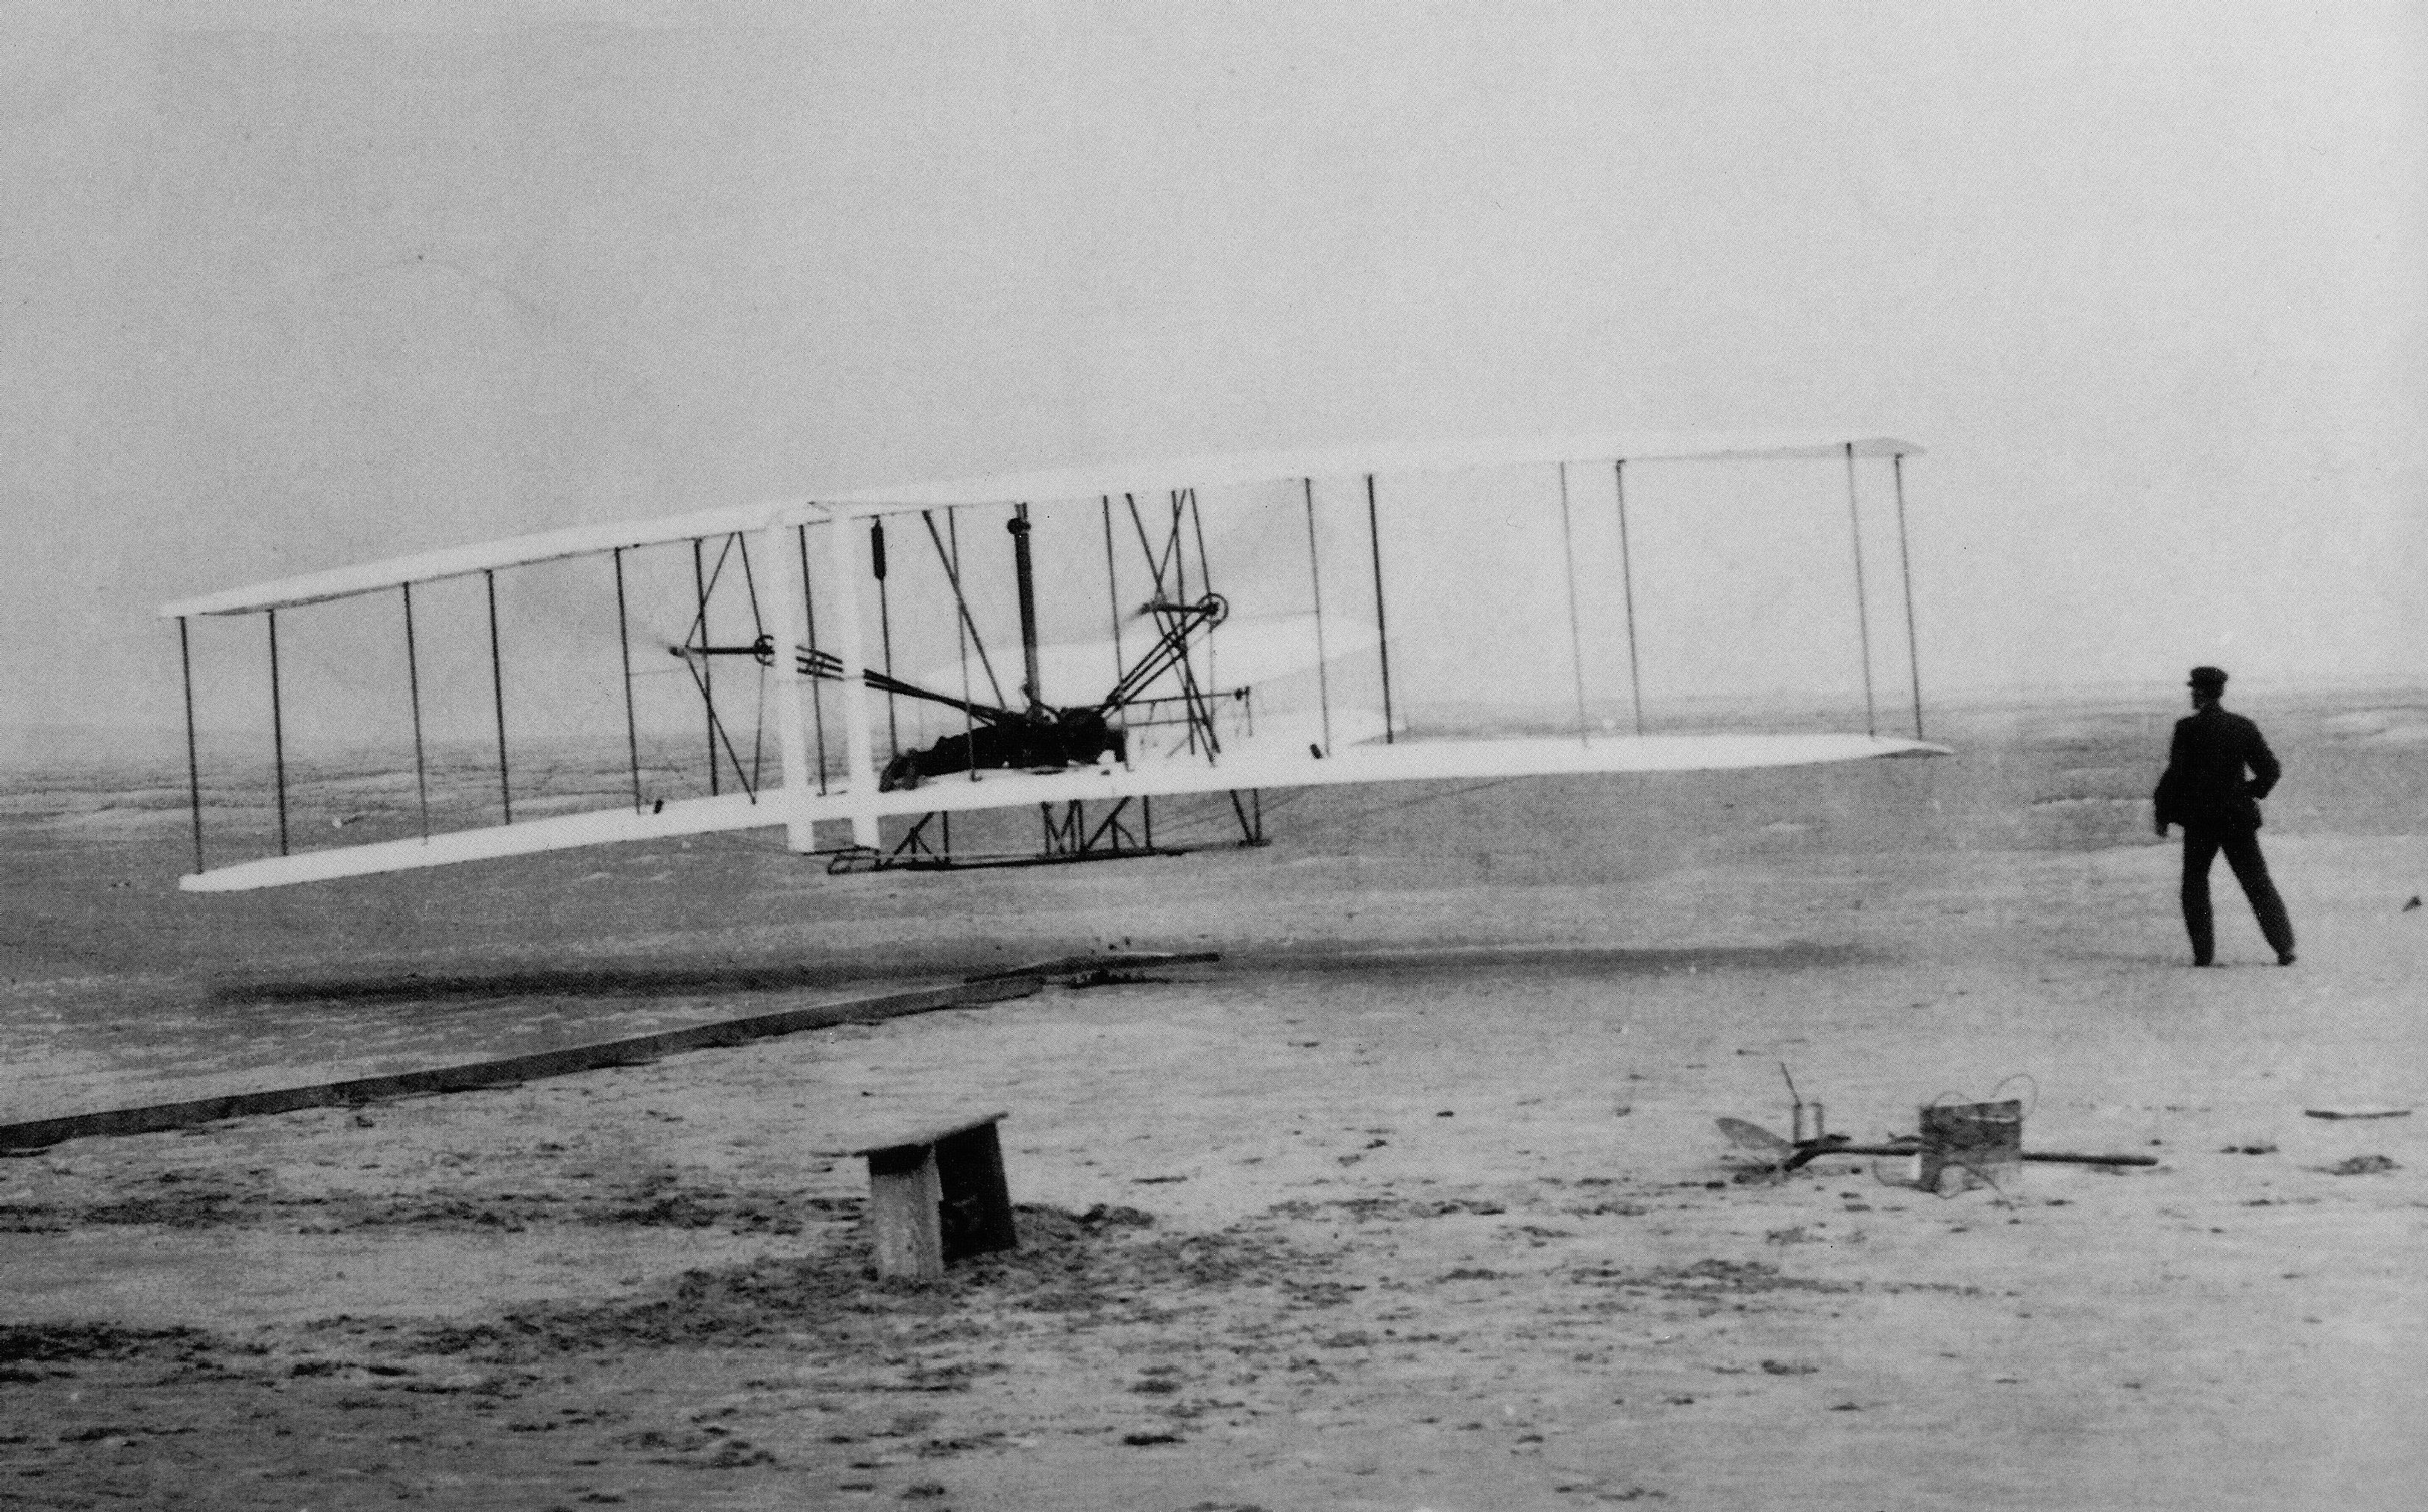 Looks wright brothers the fist plane